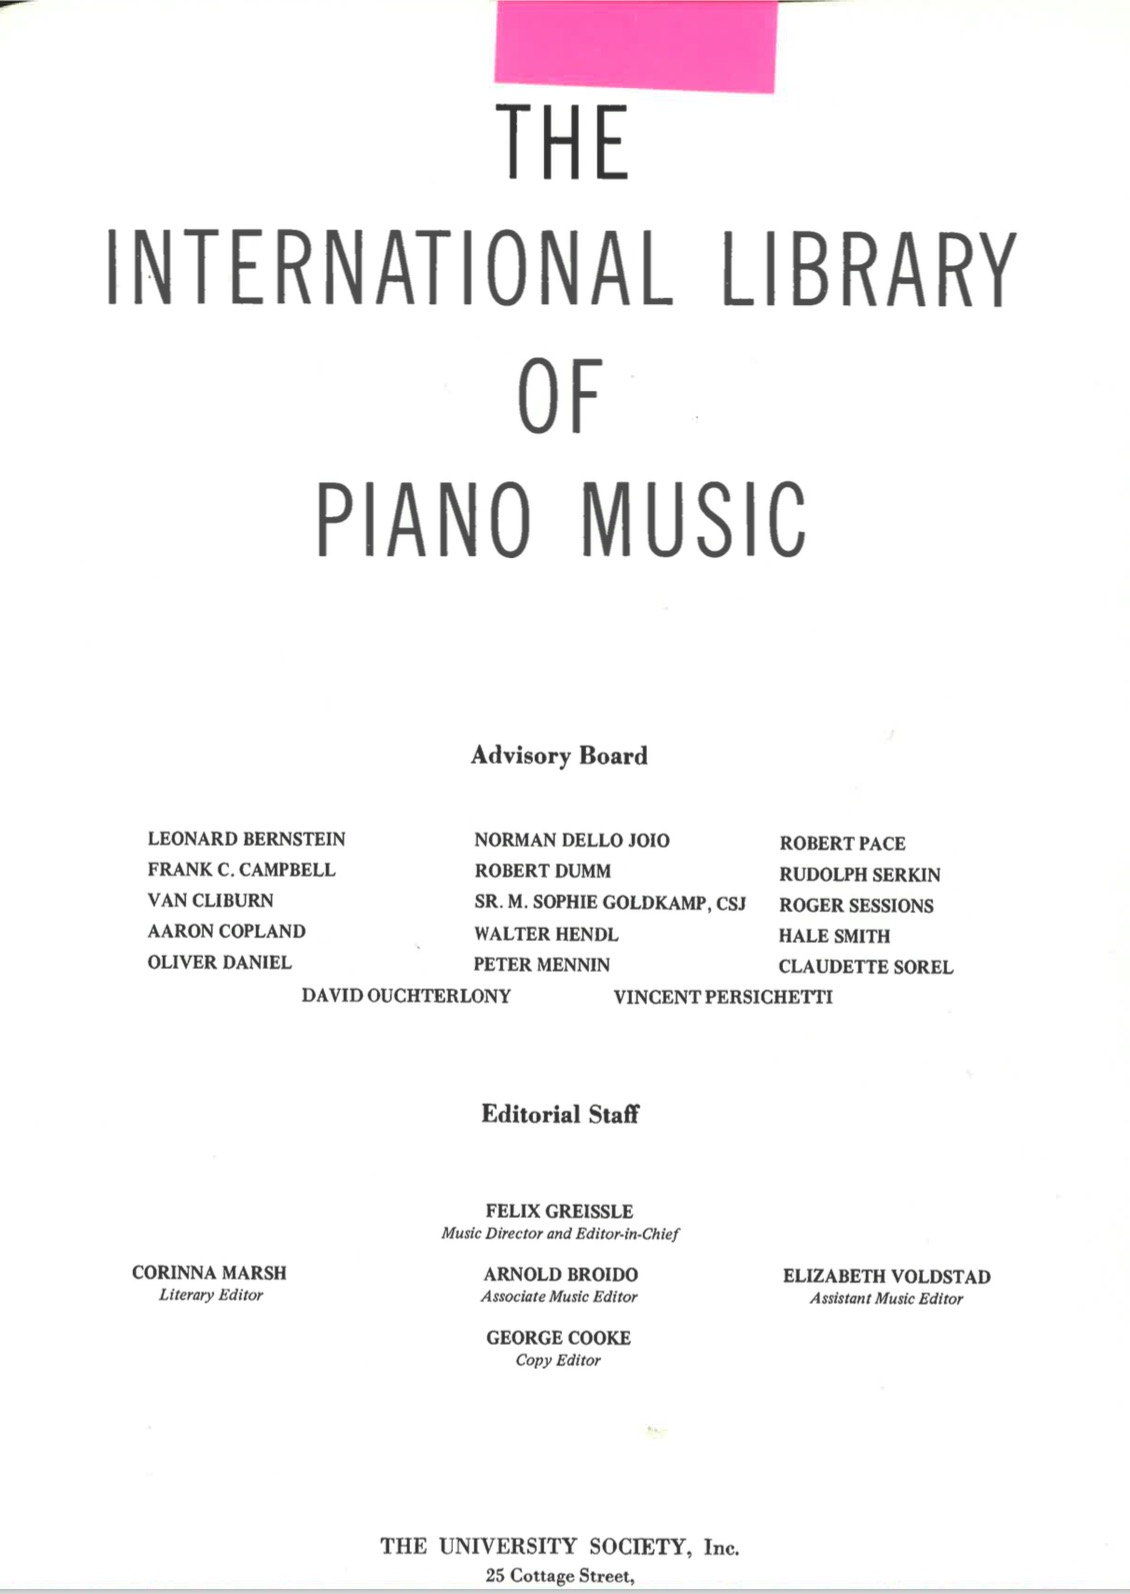 Anthologies of modern and contemporary piano music (1940